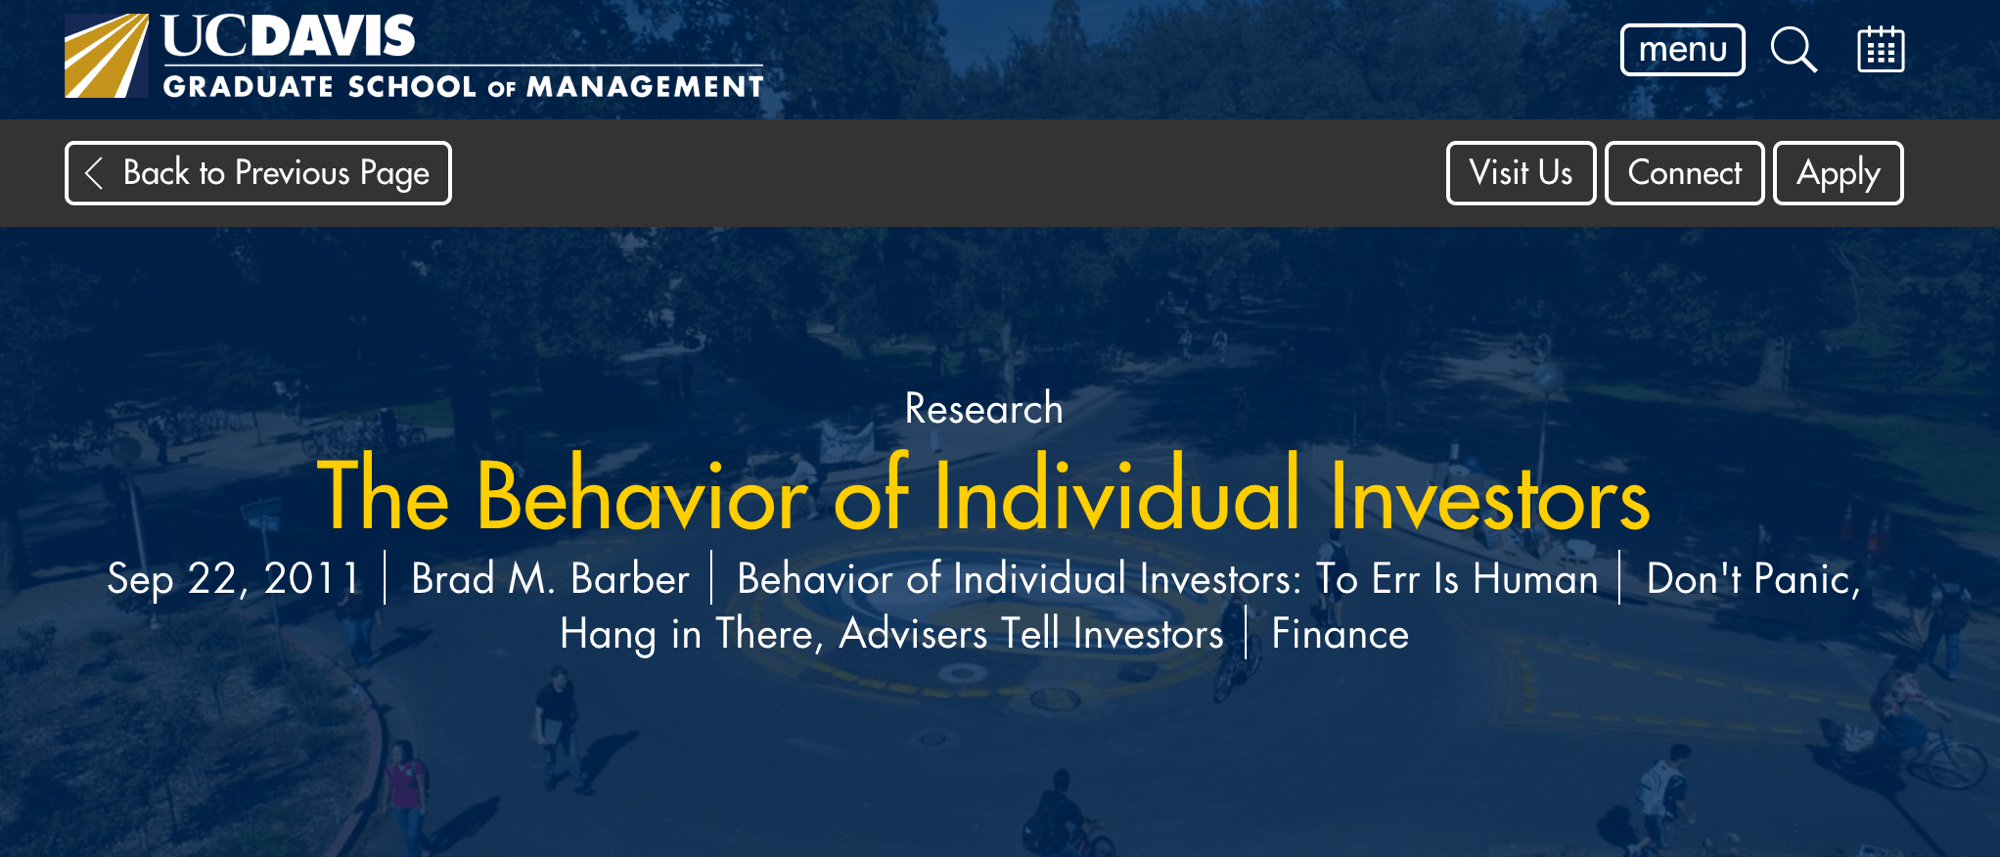 The Behavior of Individual Investors